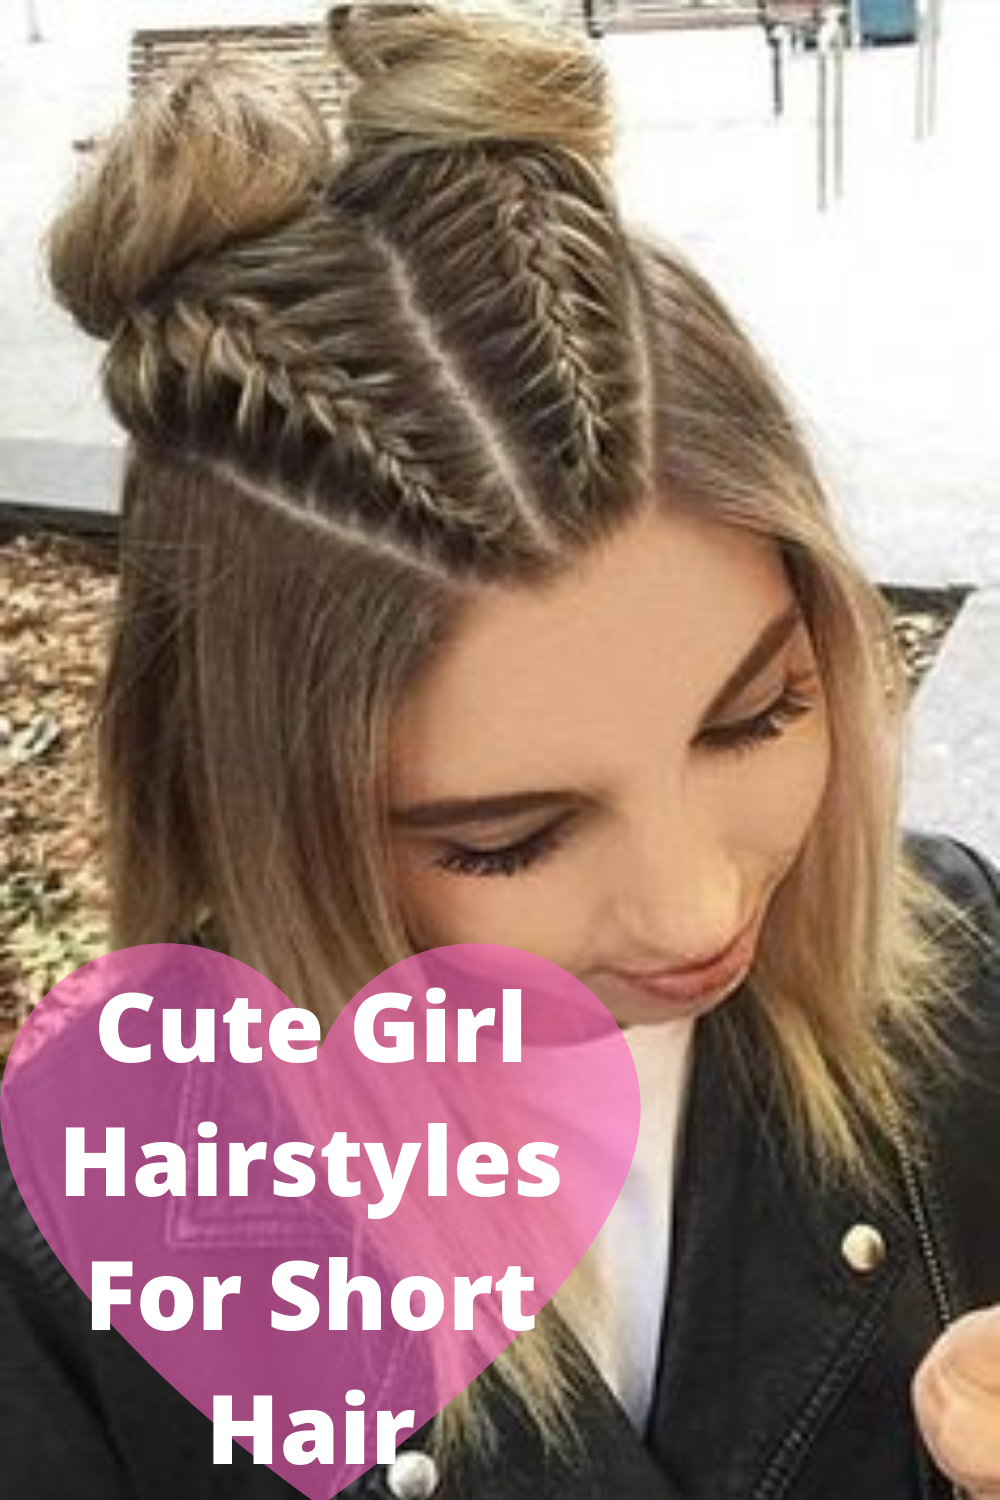 Cute Girl Hairstyles For Short Hair In 2020 Braids For Short Hair Braided Hairstyles Hair Styles